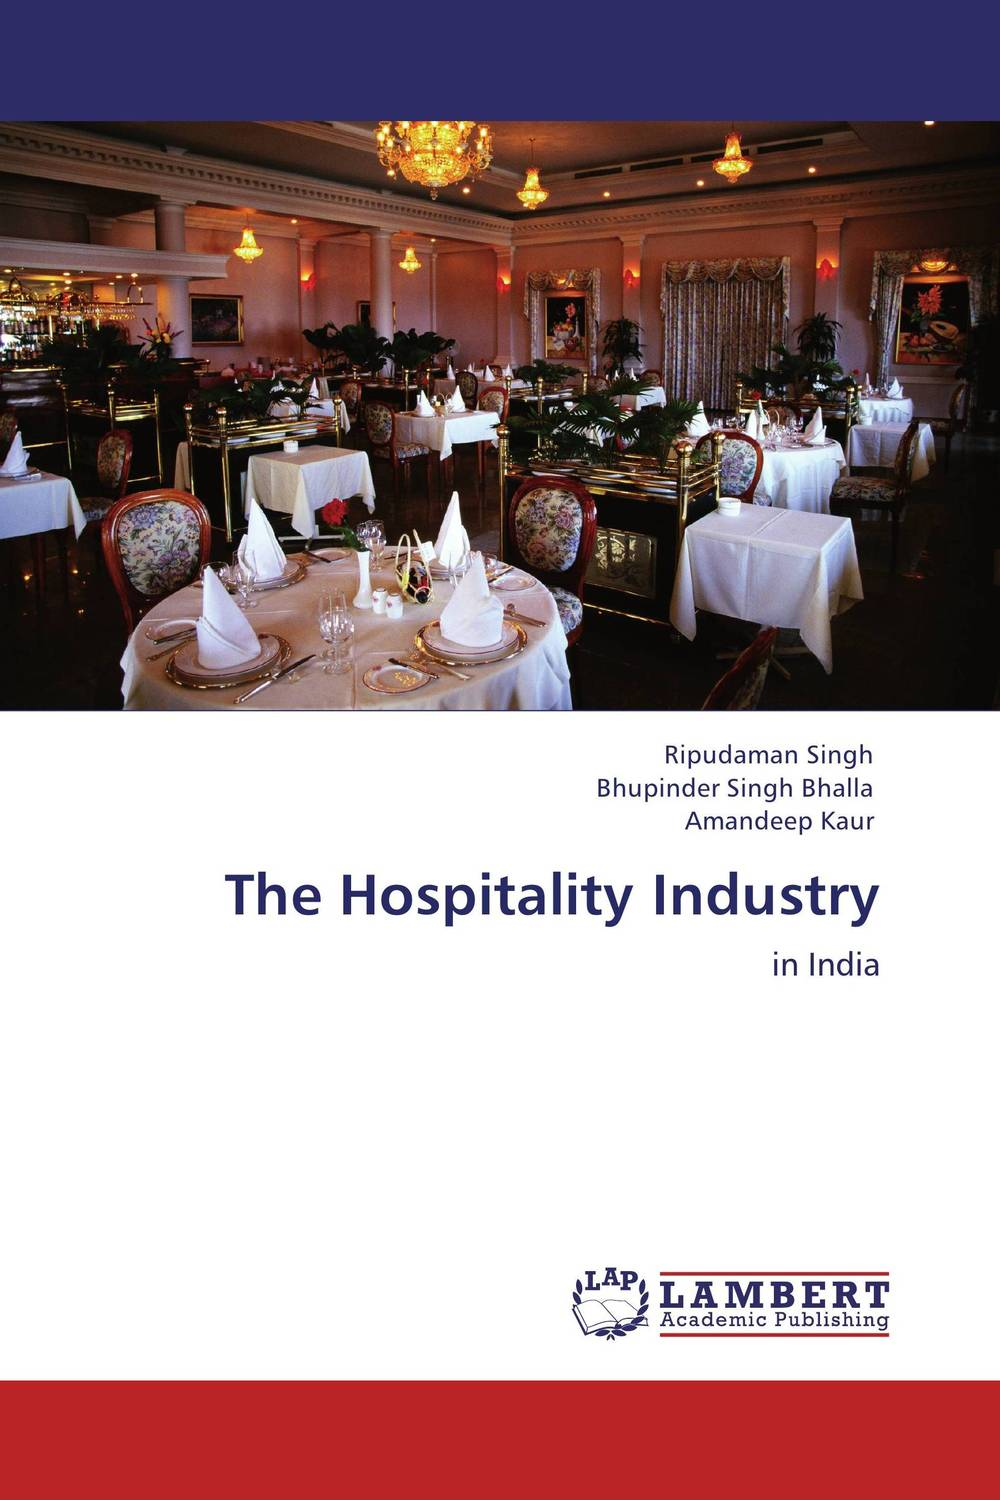 The Hospitality Industry kitaapbr181gycox01761ea value kit best hospitality wall cabinet aapbr181gy and clorox disinfecting wipes cox01761ea